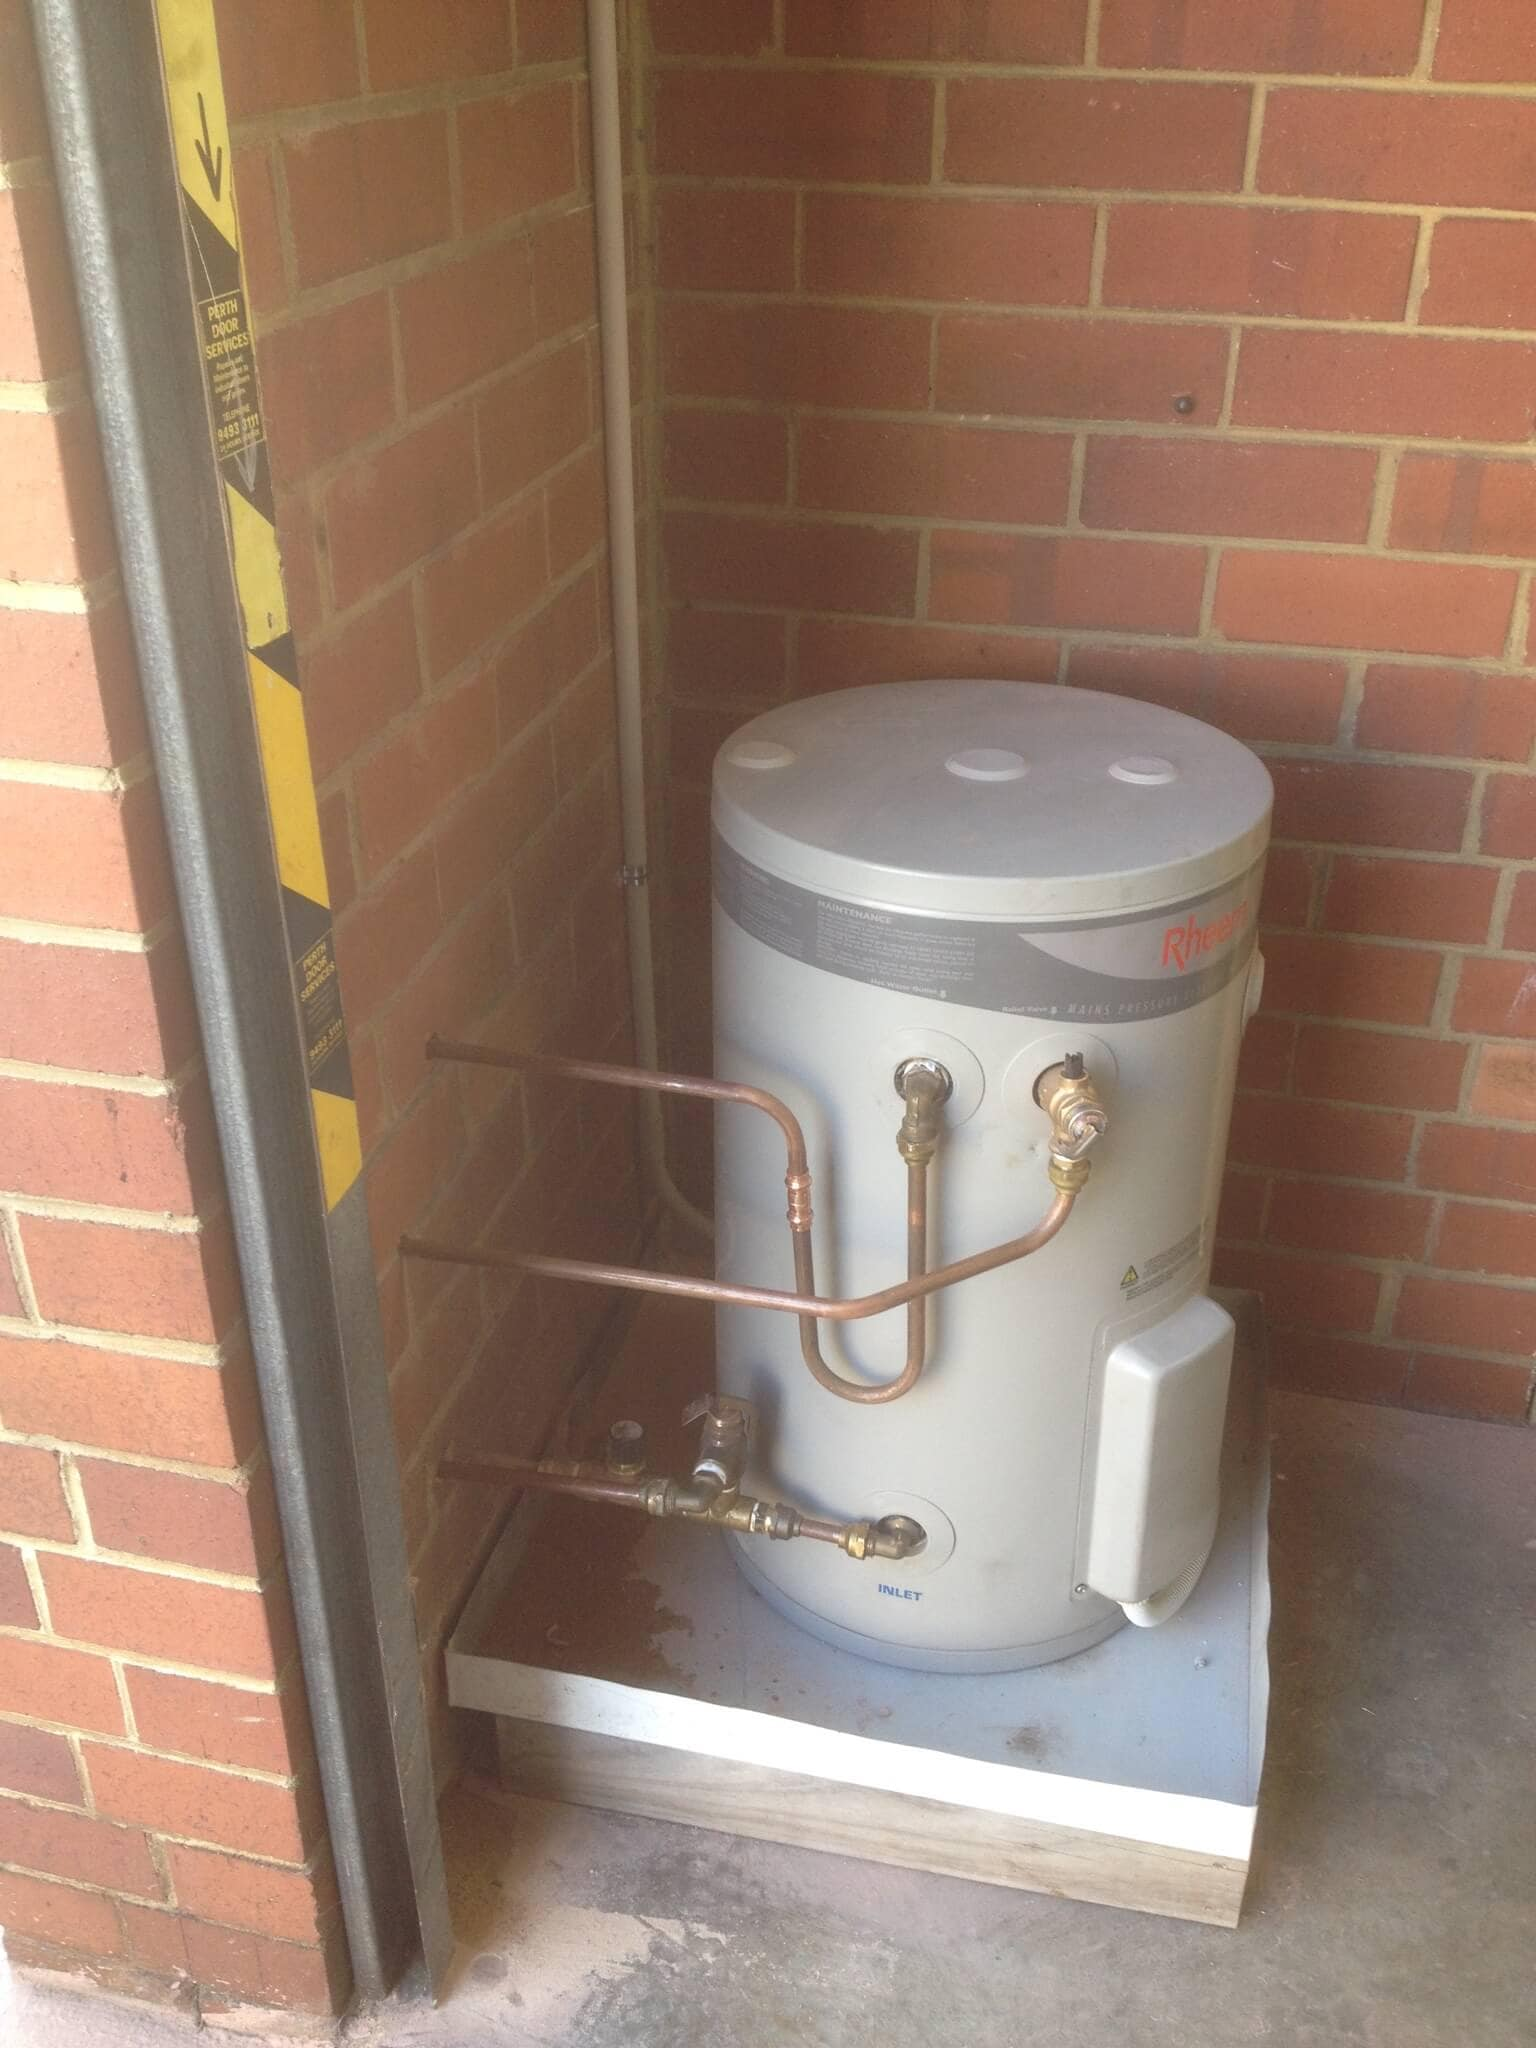 Everyday Plumbers Residential Hotwater Services - Machine Setup with New Platform